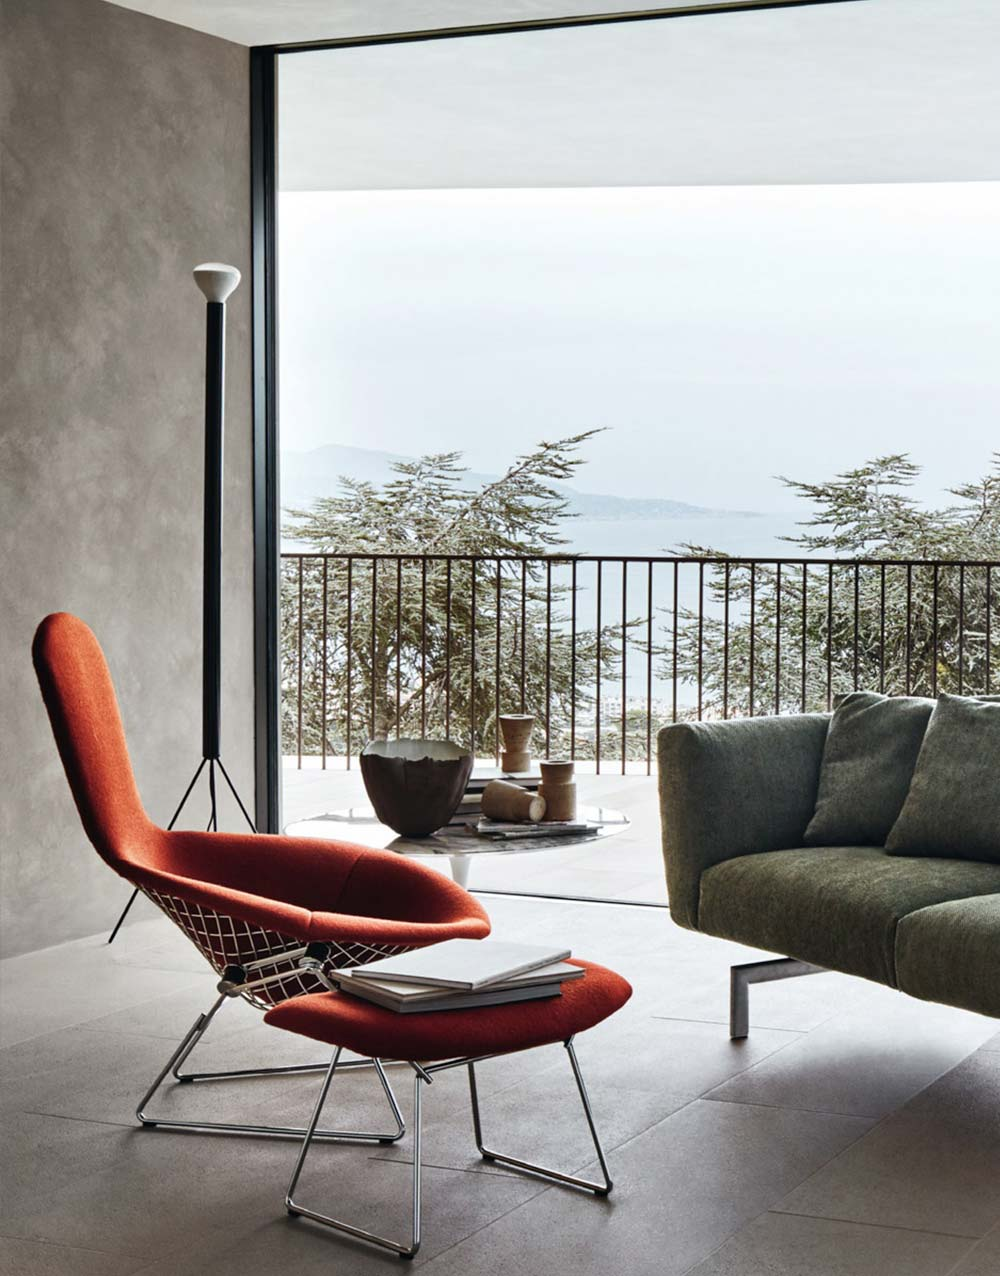 Knoll Living Room Furniture with Bertoia Bird Chair